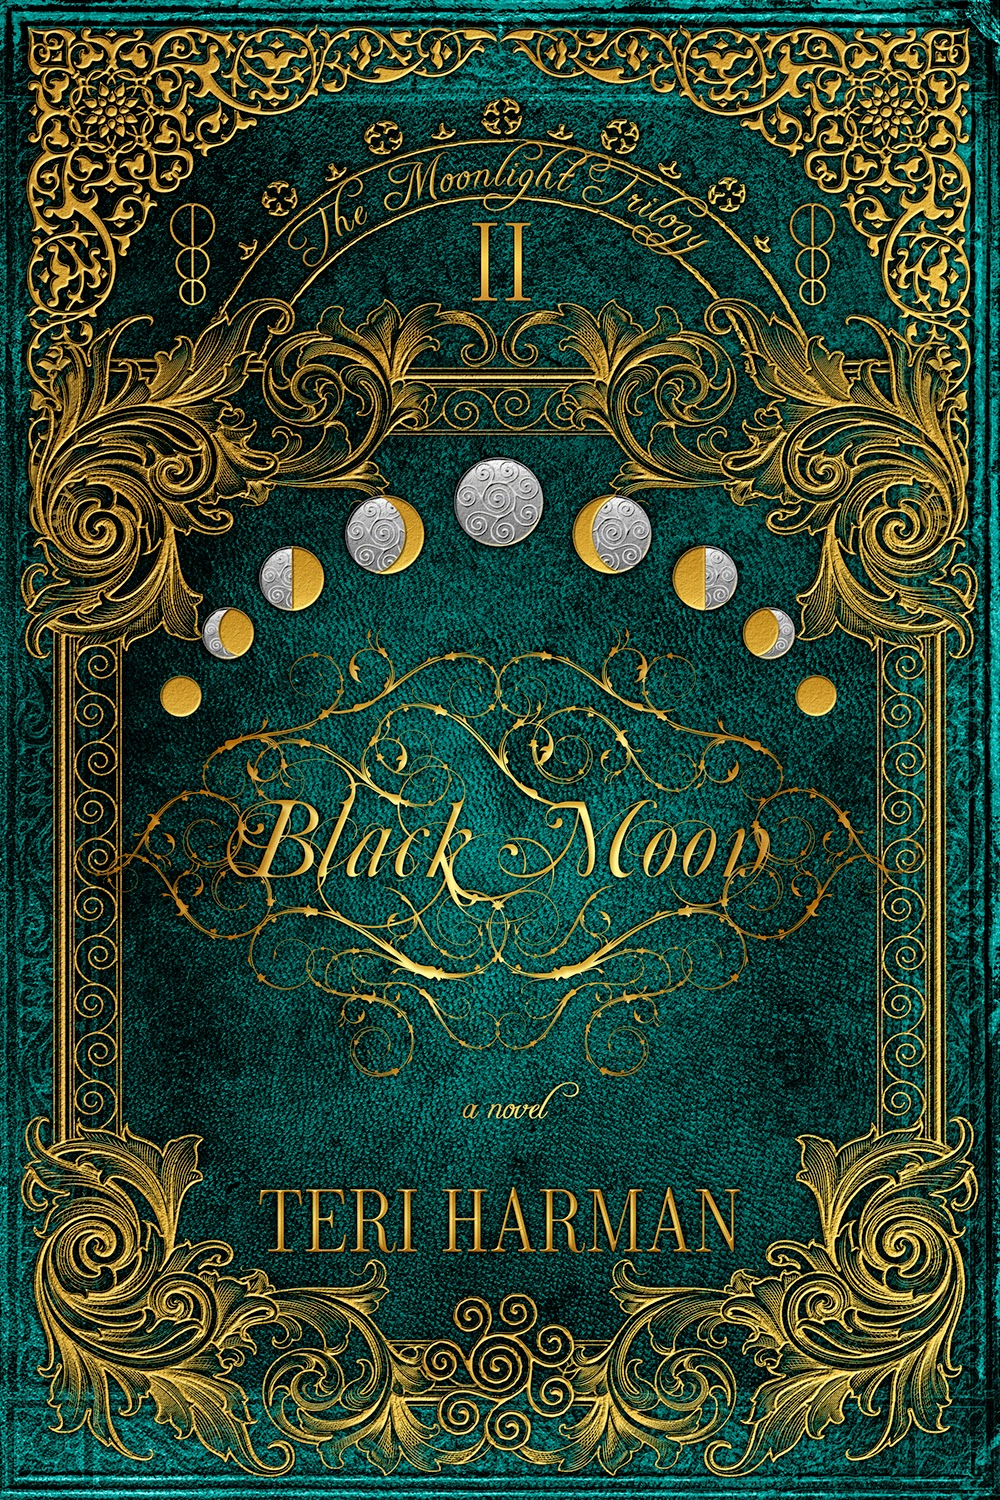 http://teriharman.com/books-by-teri/black-moon-moonlight-2/